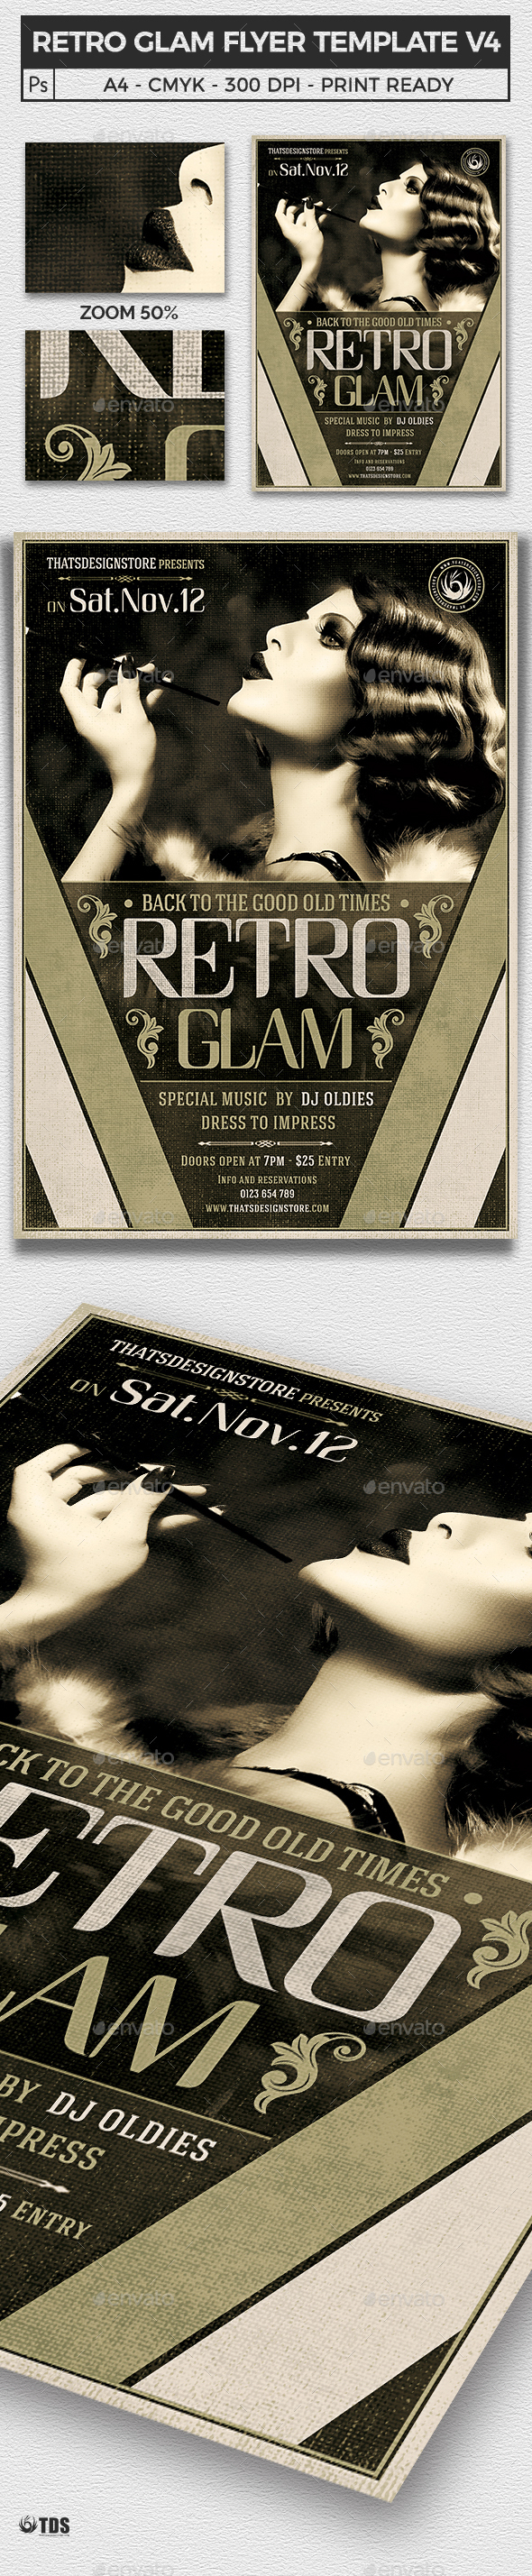 Retro Glam Flyer Template V4 - Clubs & Parties Events